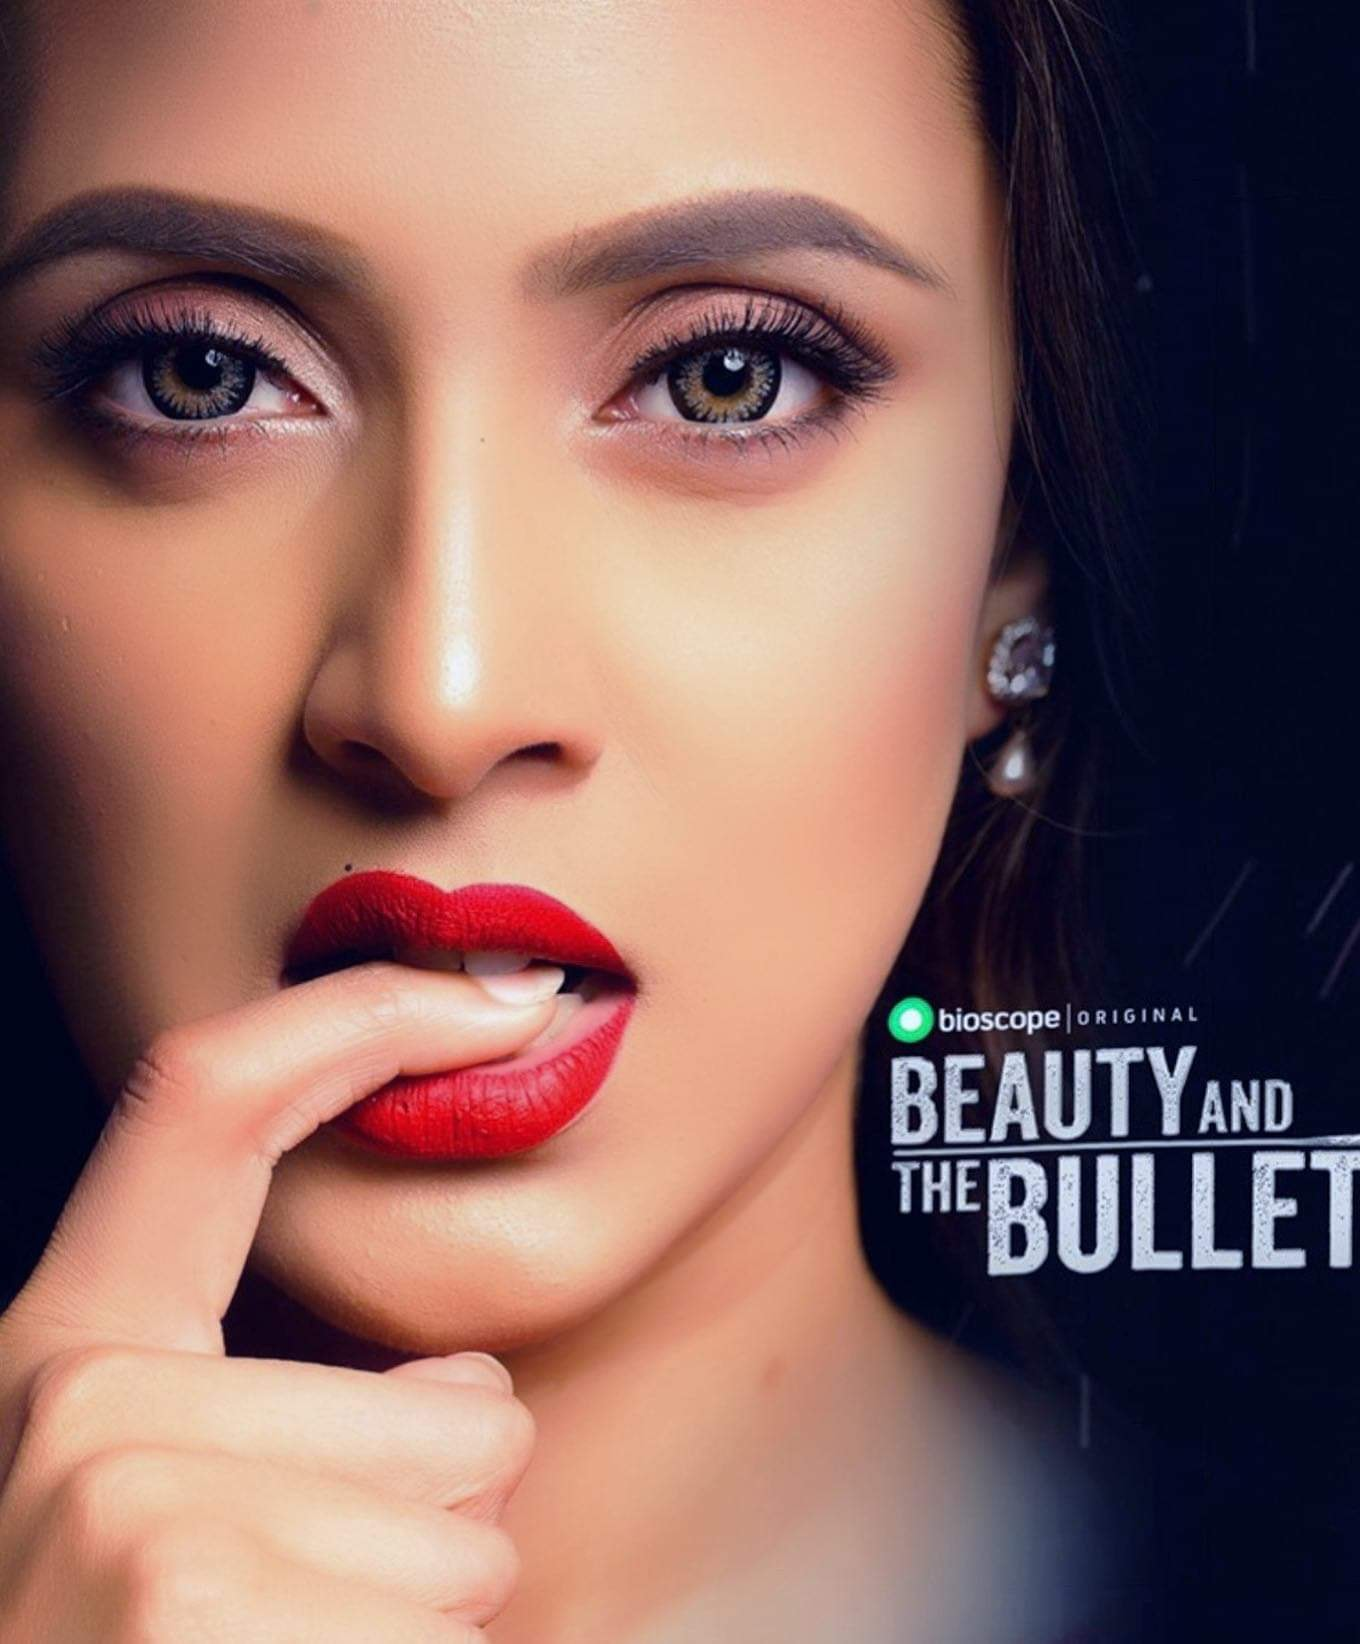 Beauty and The Bullet (2020) Bengali Full WEB Series WEB-DL 720p 1GB MKV